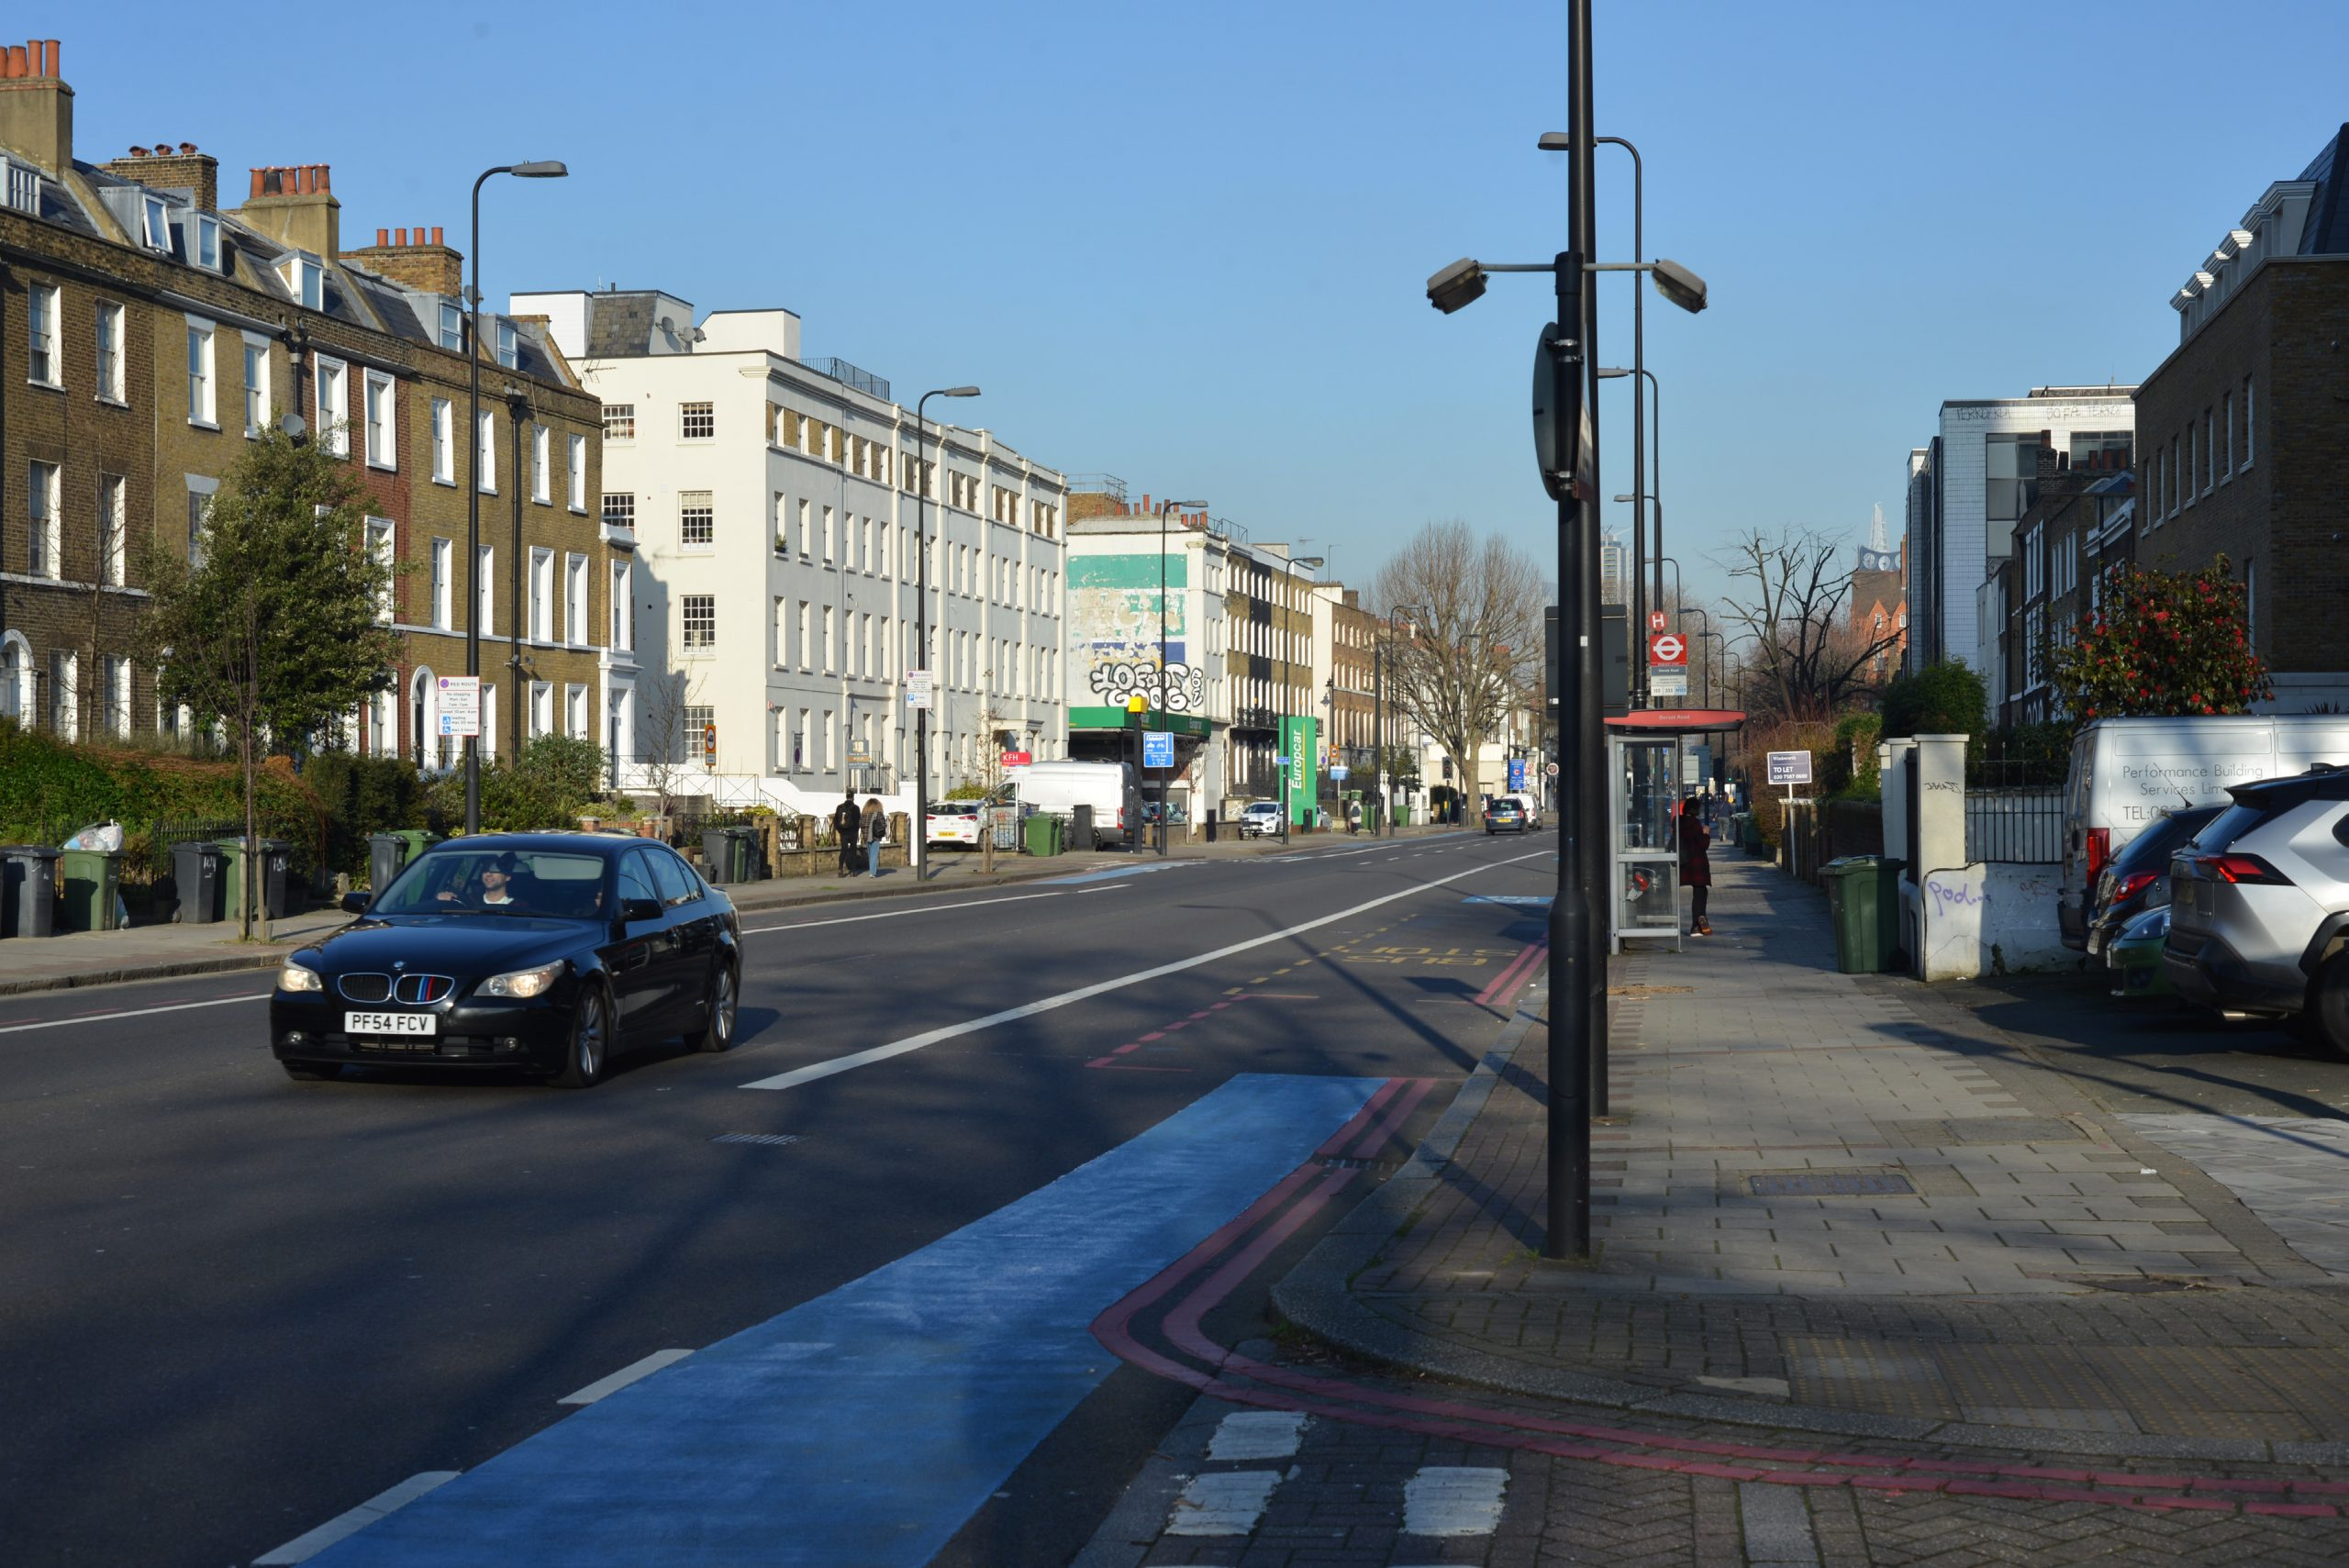 A street view from 68-86 Clapham Road Development by MELT Property.